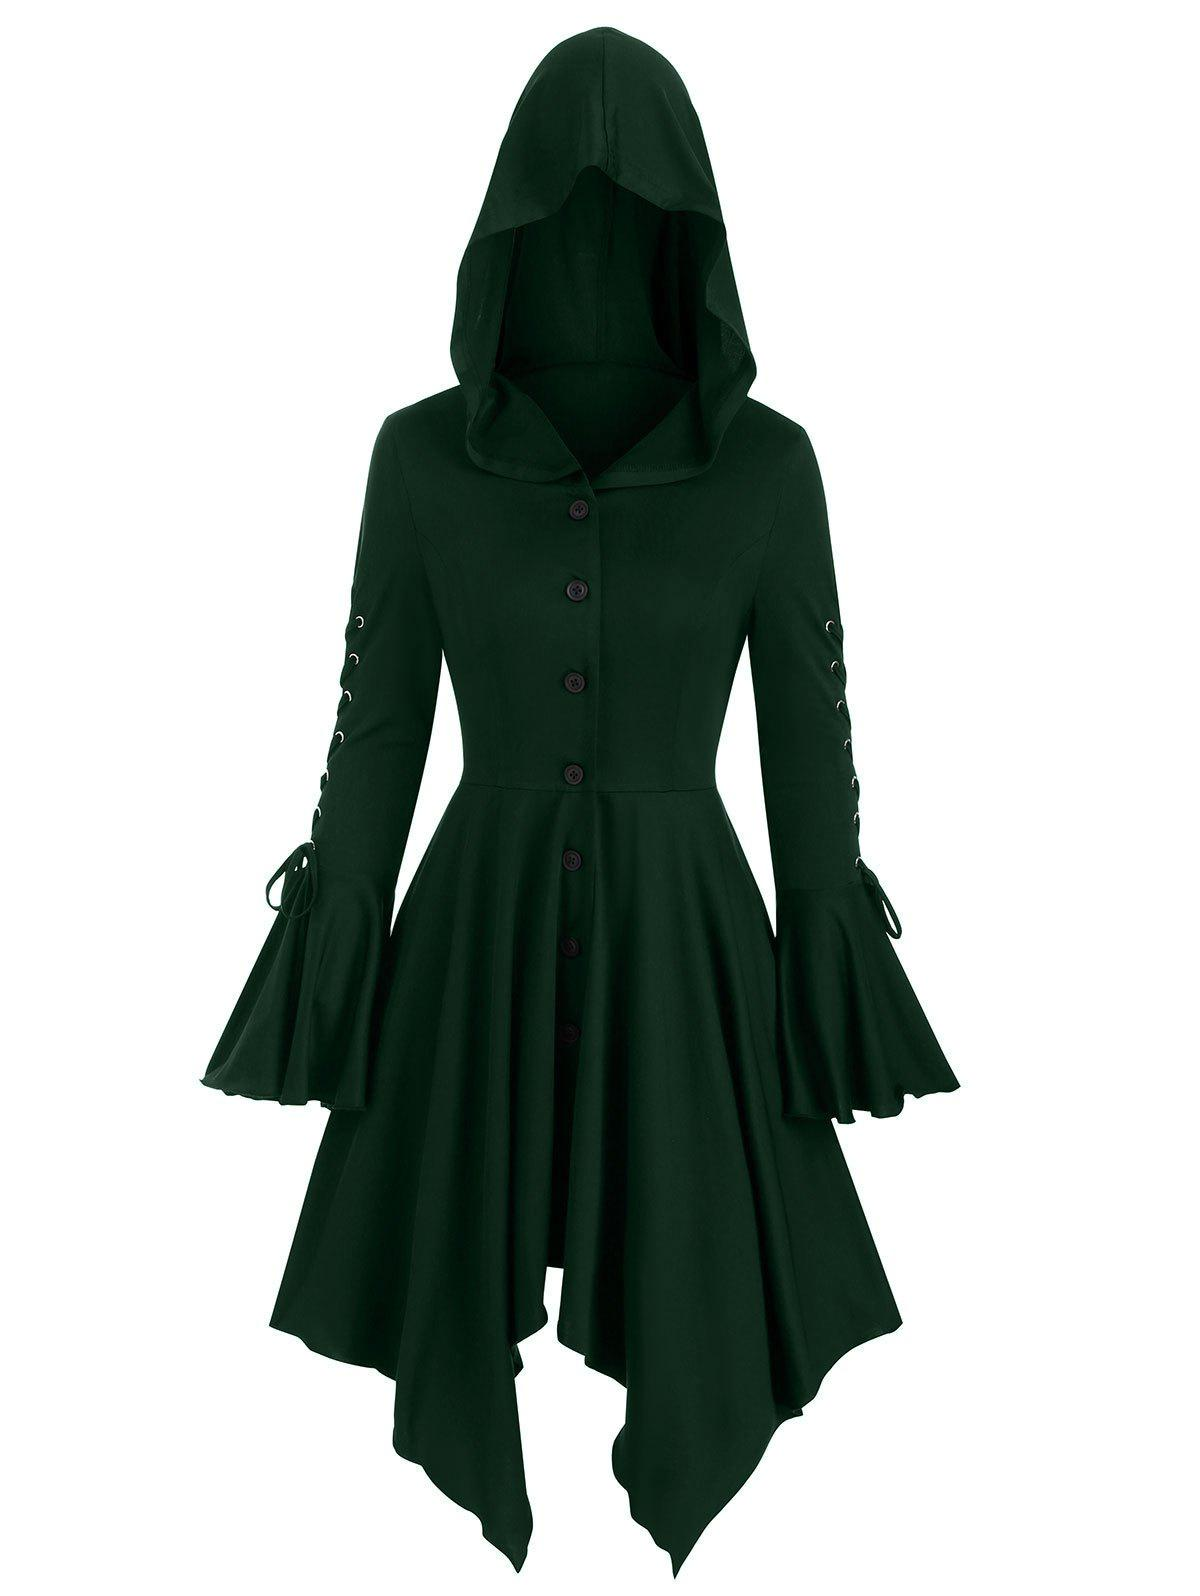 Hooded Lace-up Poet Sleeve Button Up Hanky Hem Skirted Gothic Coat - DARK FOREST GREEN 2XL